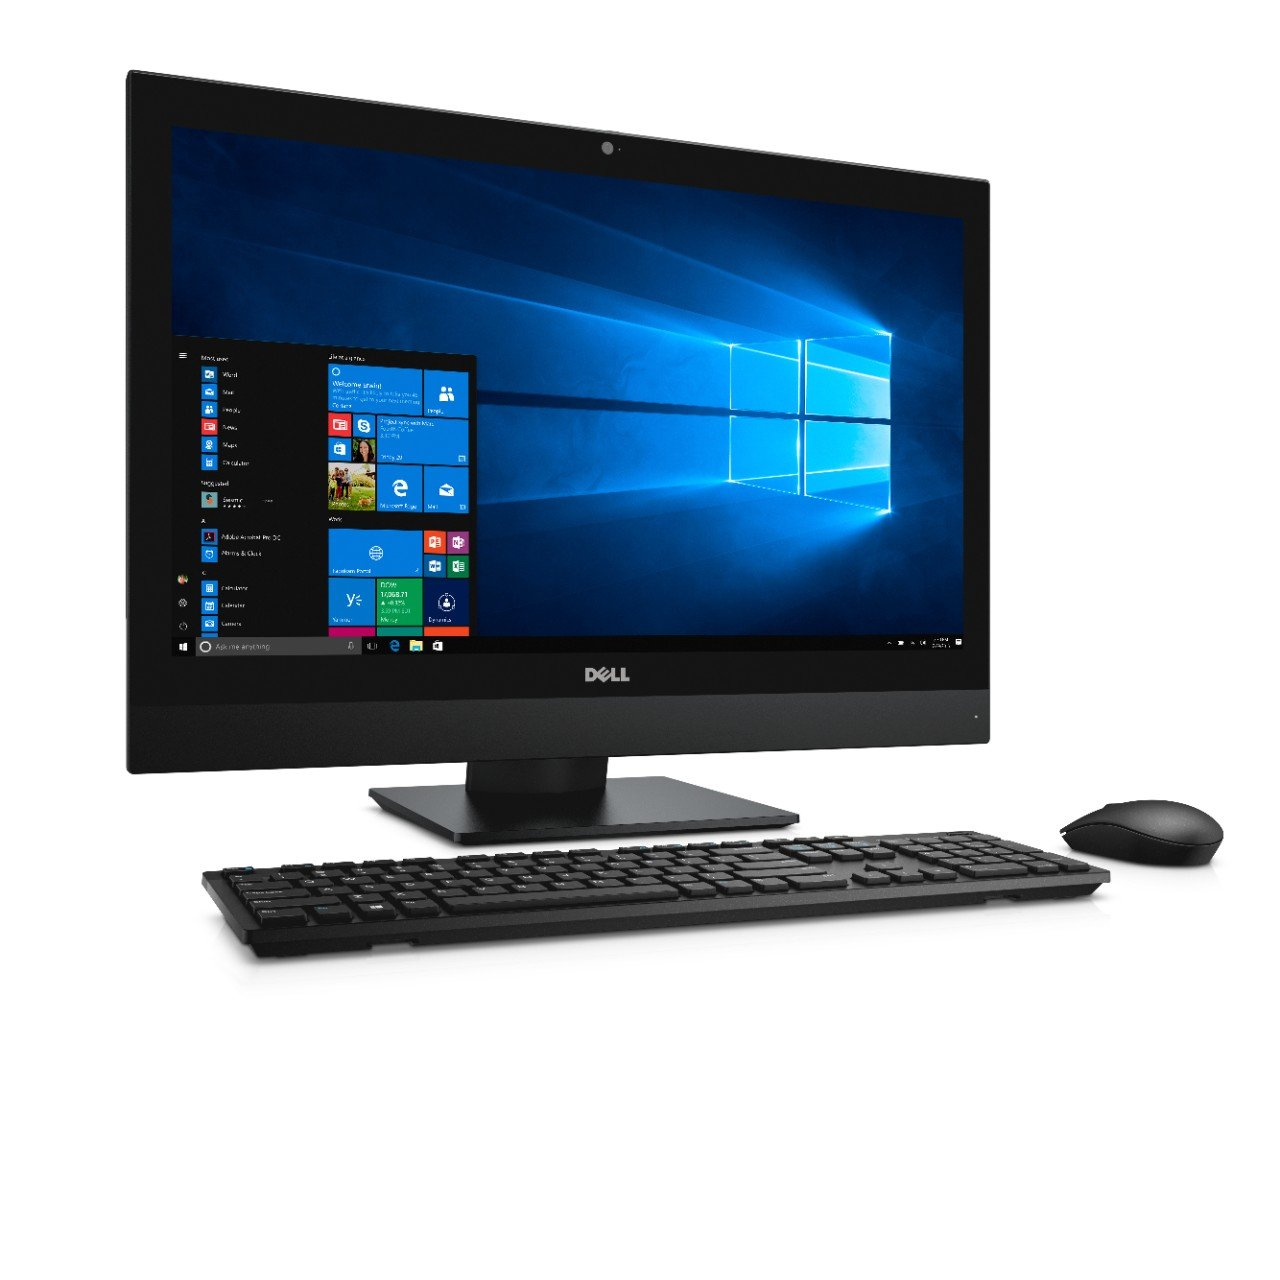 Dell OptiPlex 7450 All In One Desktop Computer, Intel Core i7-7700, 8GB DDR4, 500GB Hard Drive, Windows 10 Pro (040P6) by Dell